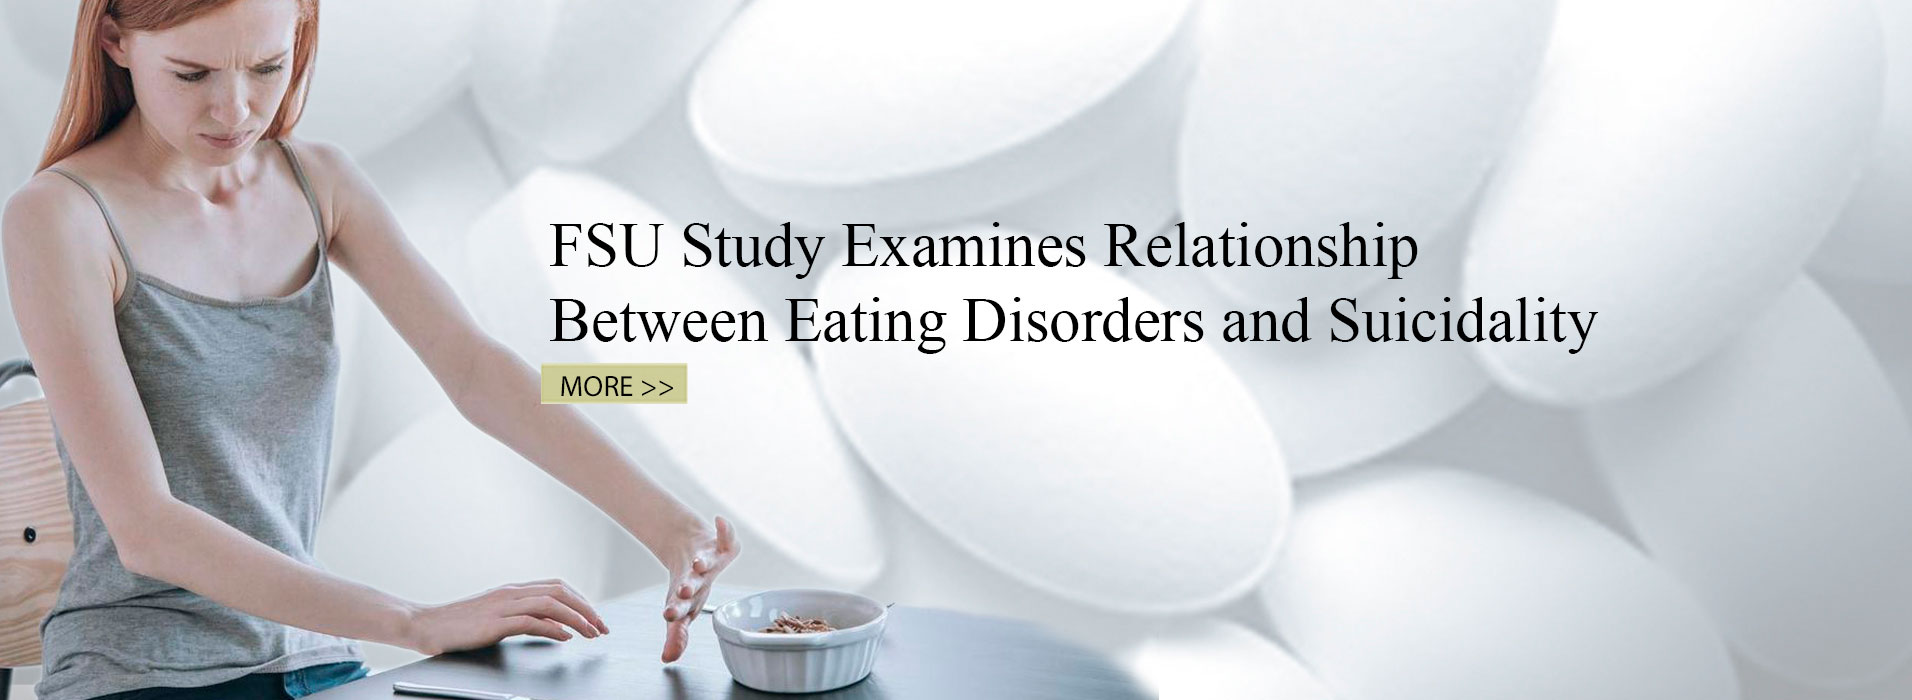 FSU Study Examines Relationship Between Eating Disorders and Suicidality